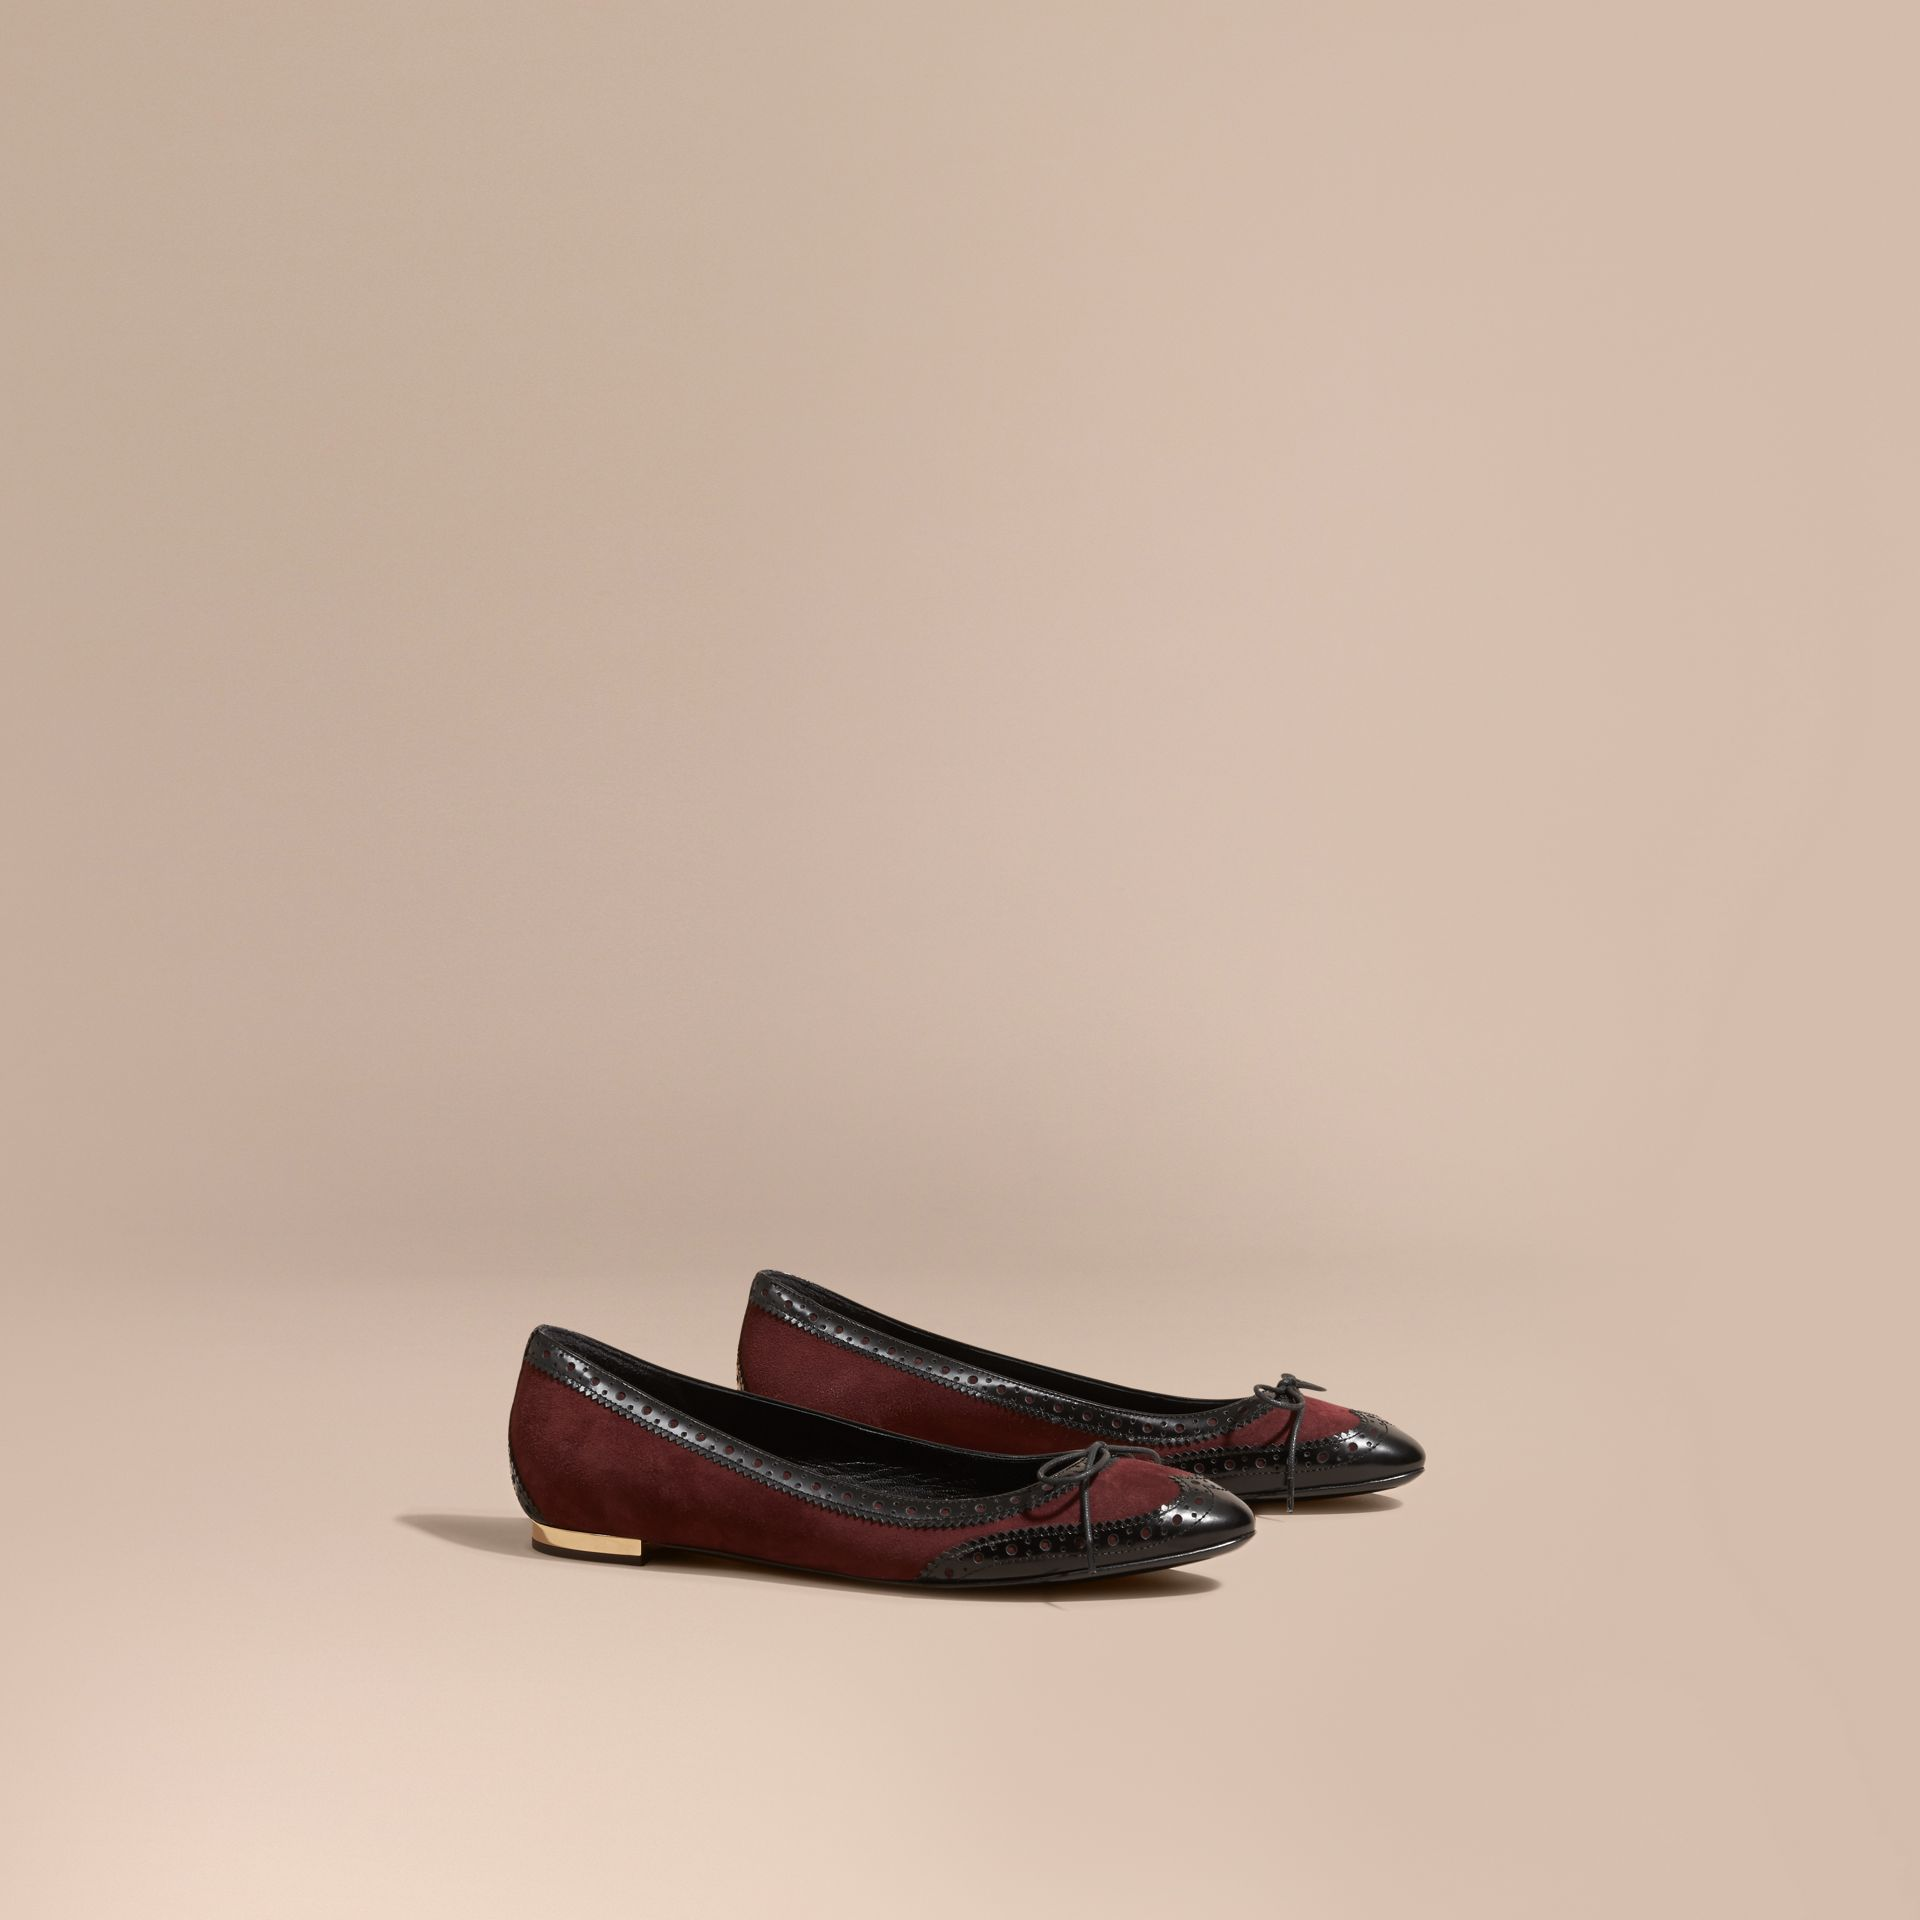 Mahogany red Brogue Detail Leather Ballerinas - gallery image 1